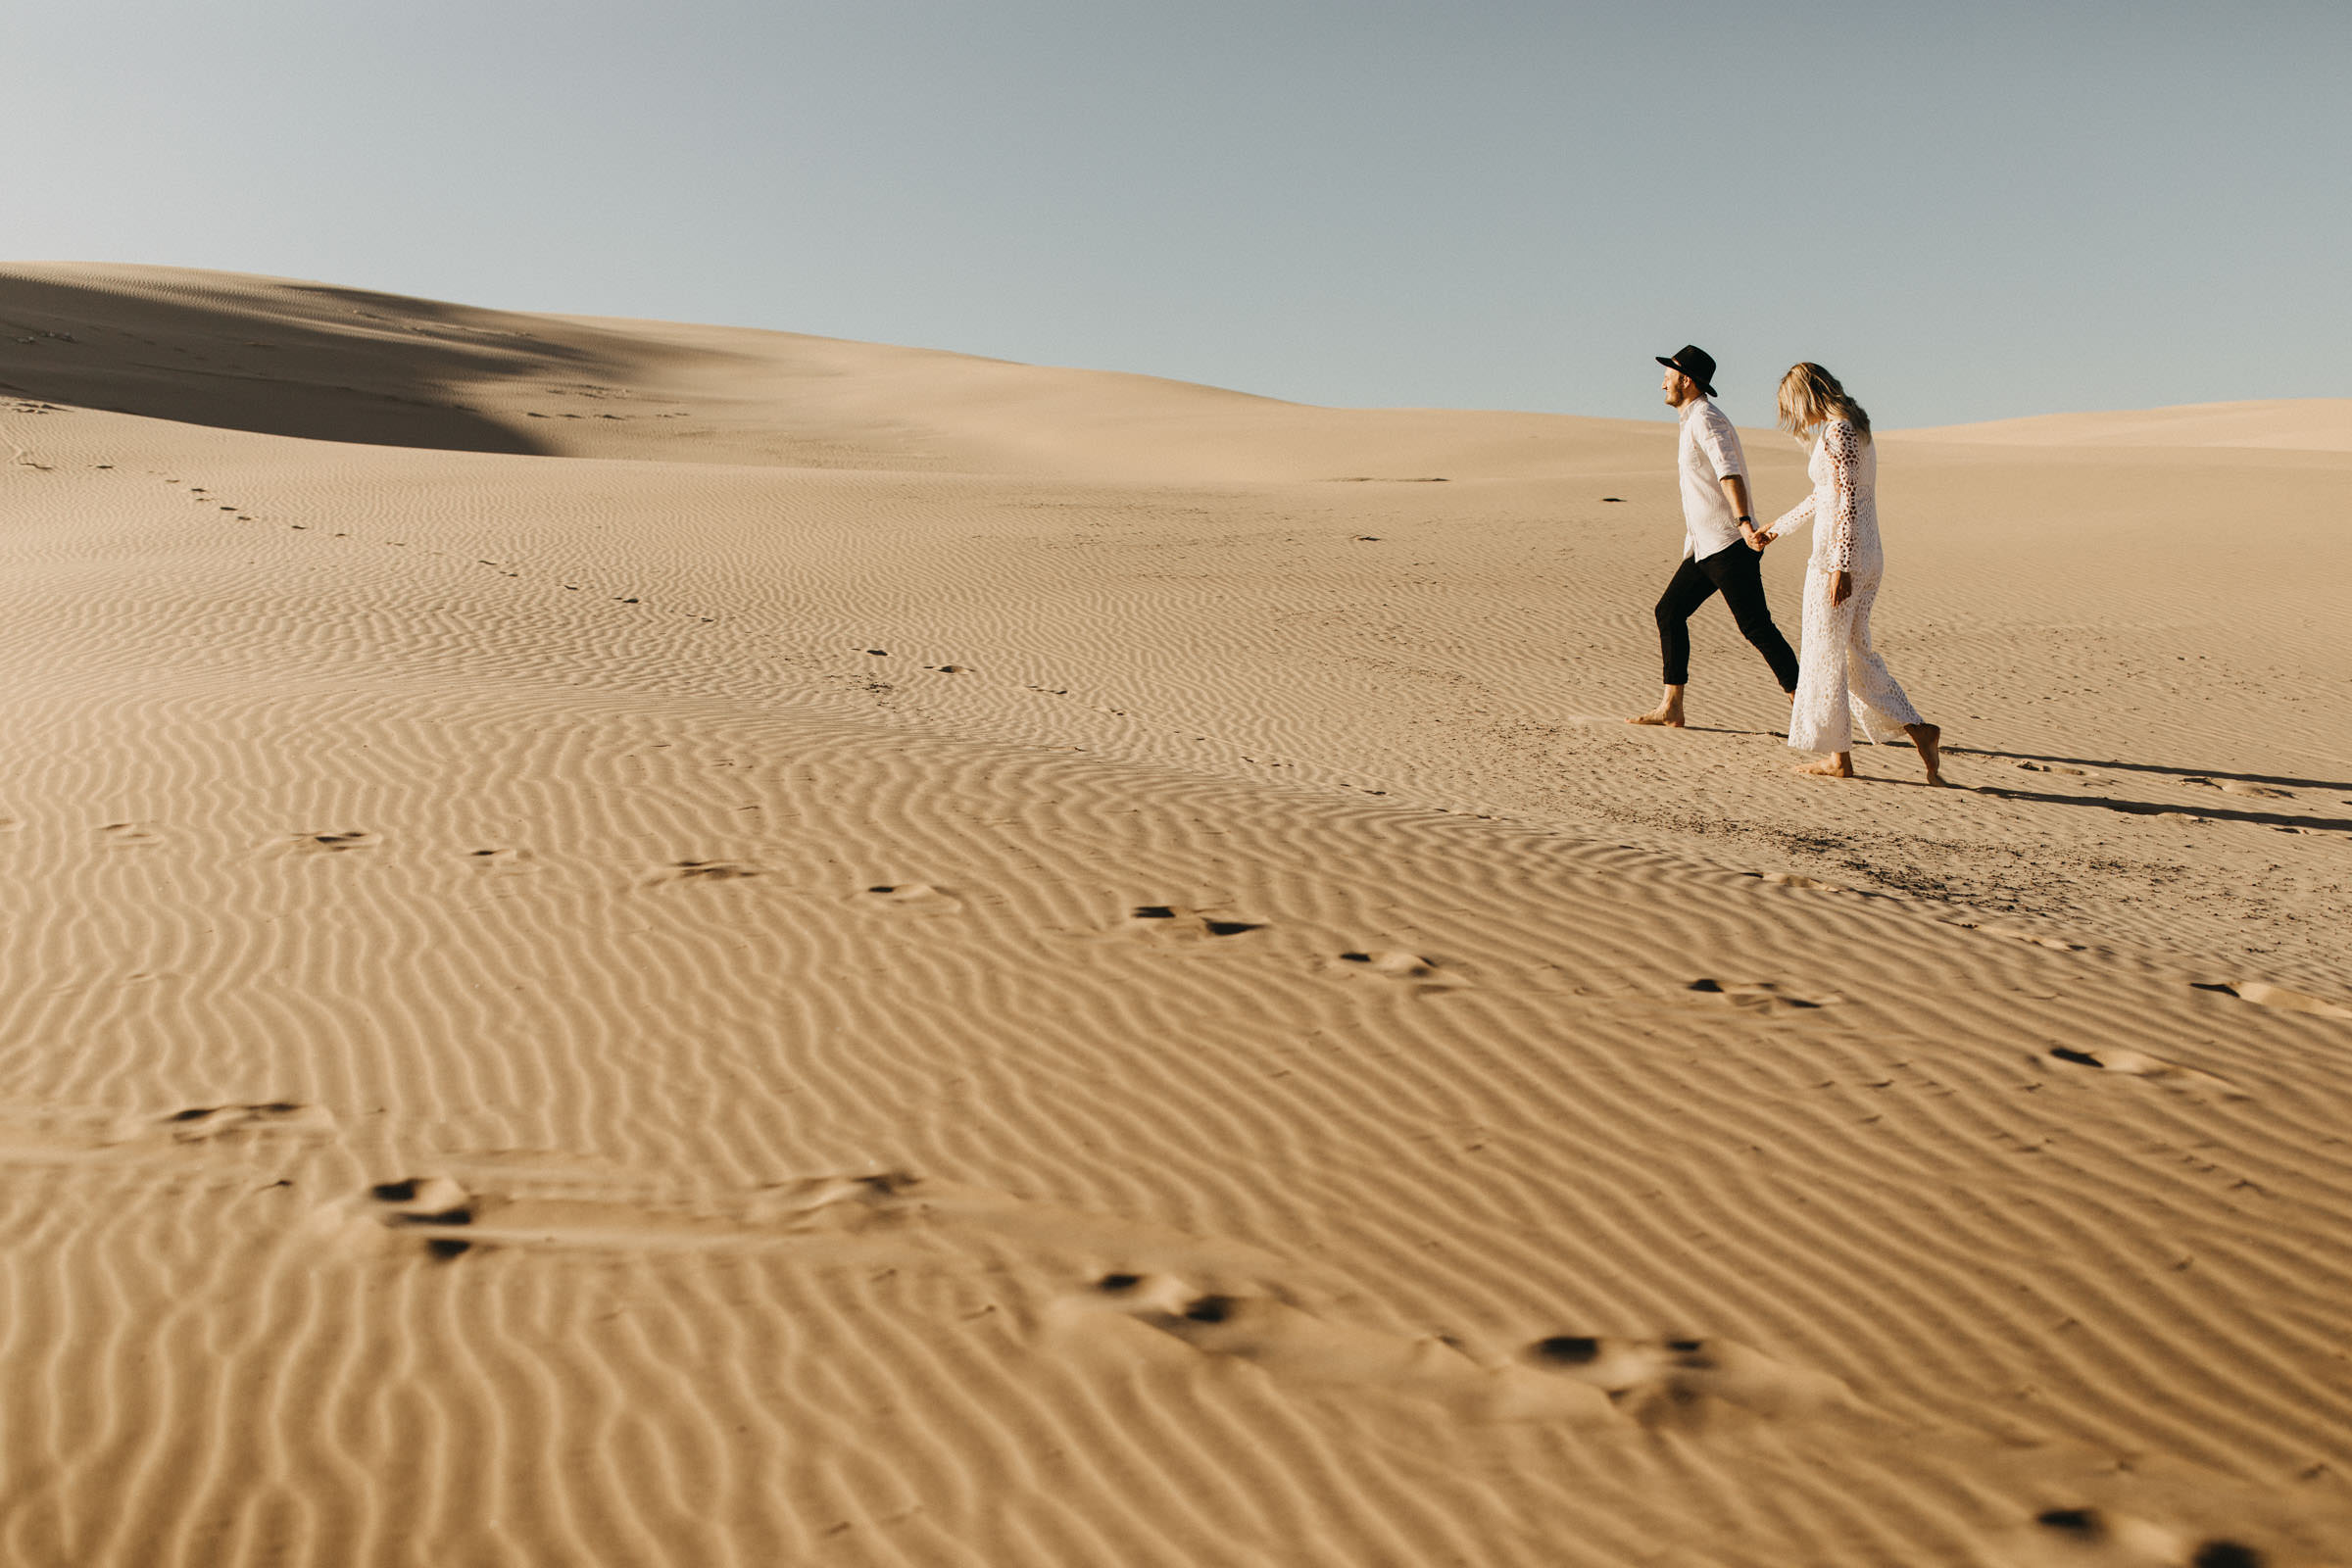 Stockon-sand-dunes-shoot-1-1.jpg